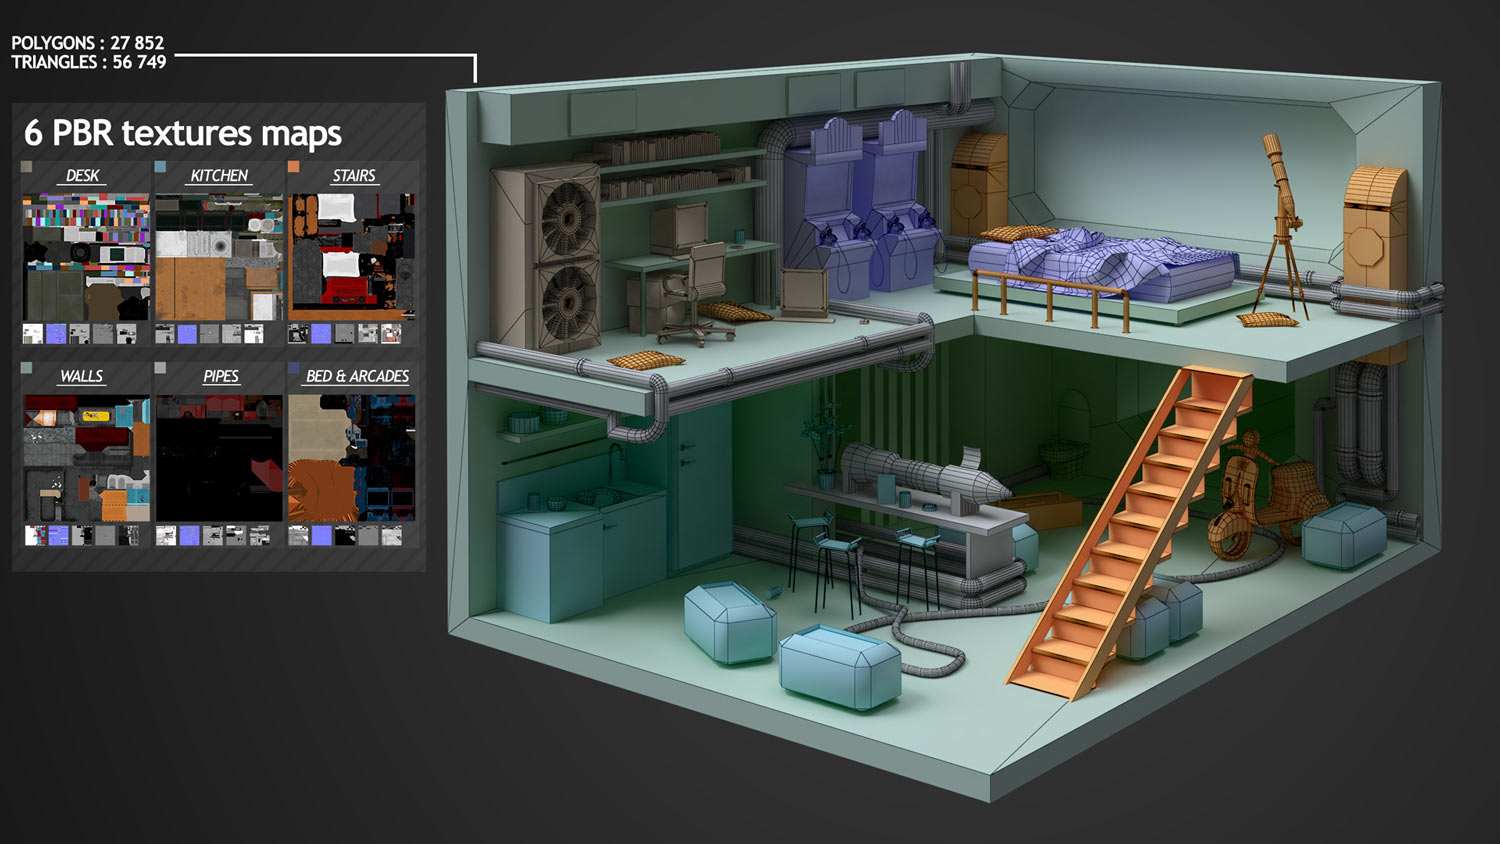 pixelion8-3d-isometric-room-textures-6-pbr-construction